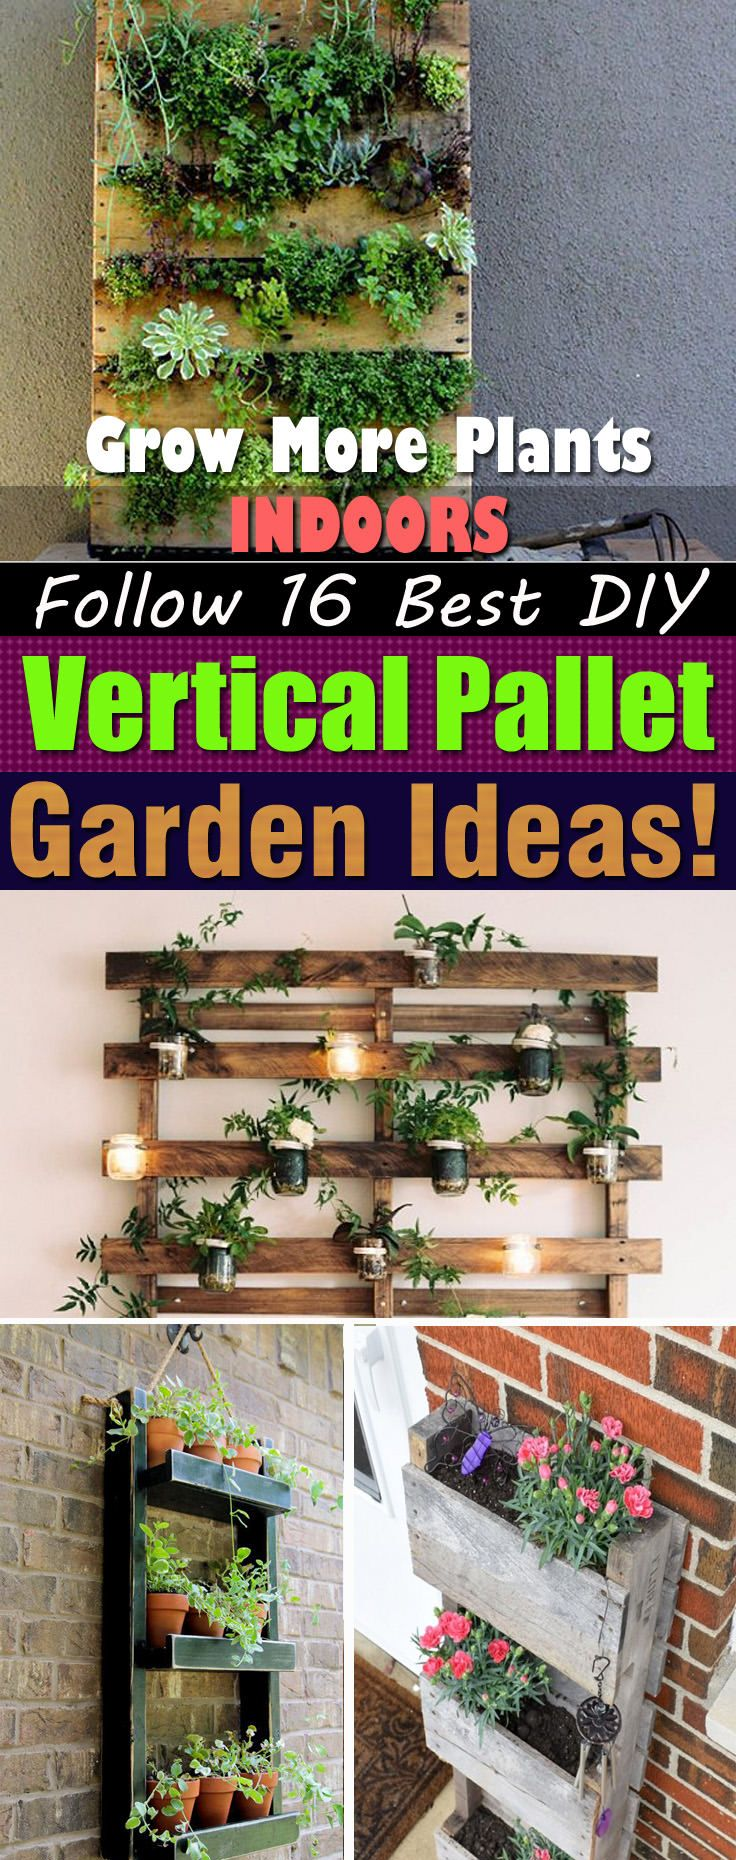 With these Vertical Indoor Pallet Garden Ideas here, not only you'll be able to save money but also create more space for growing plants!